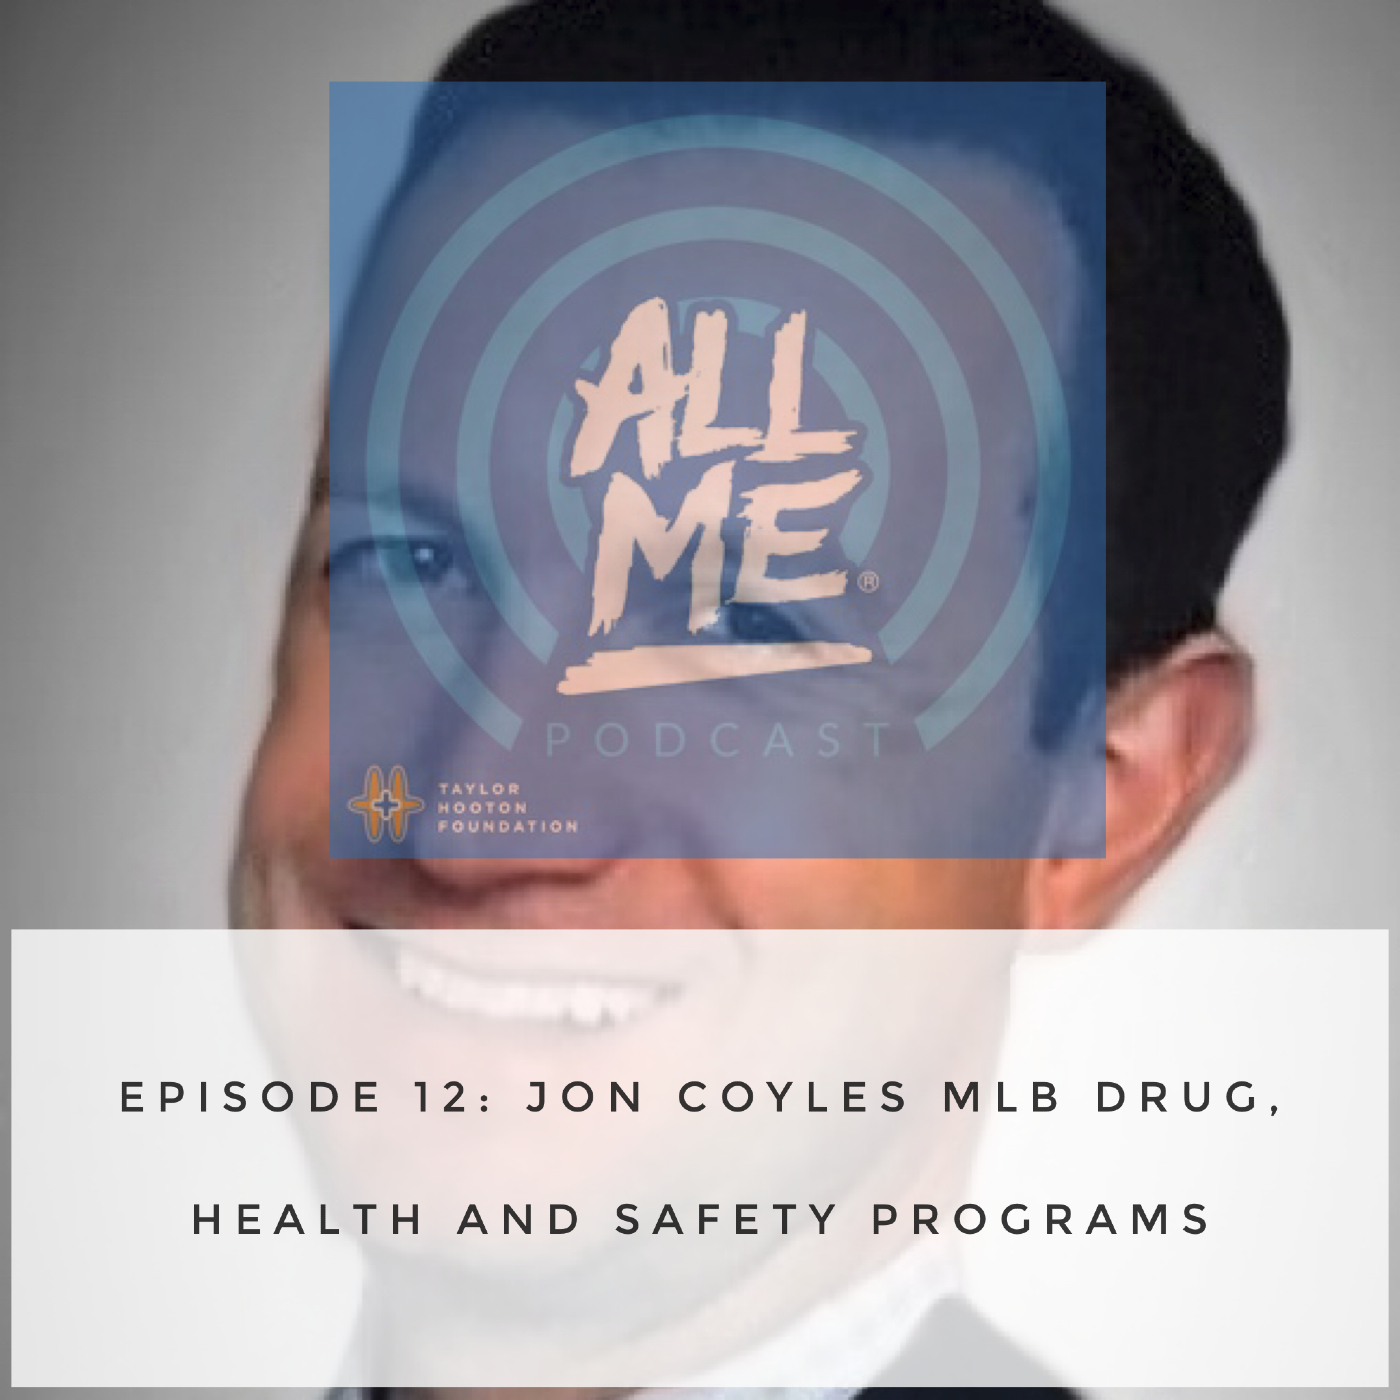 Episode 12: MLB's Drug, Health & Safety Programs - Jon Coyles